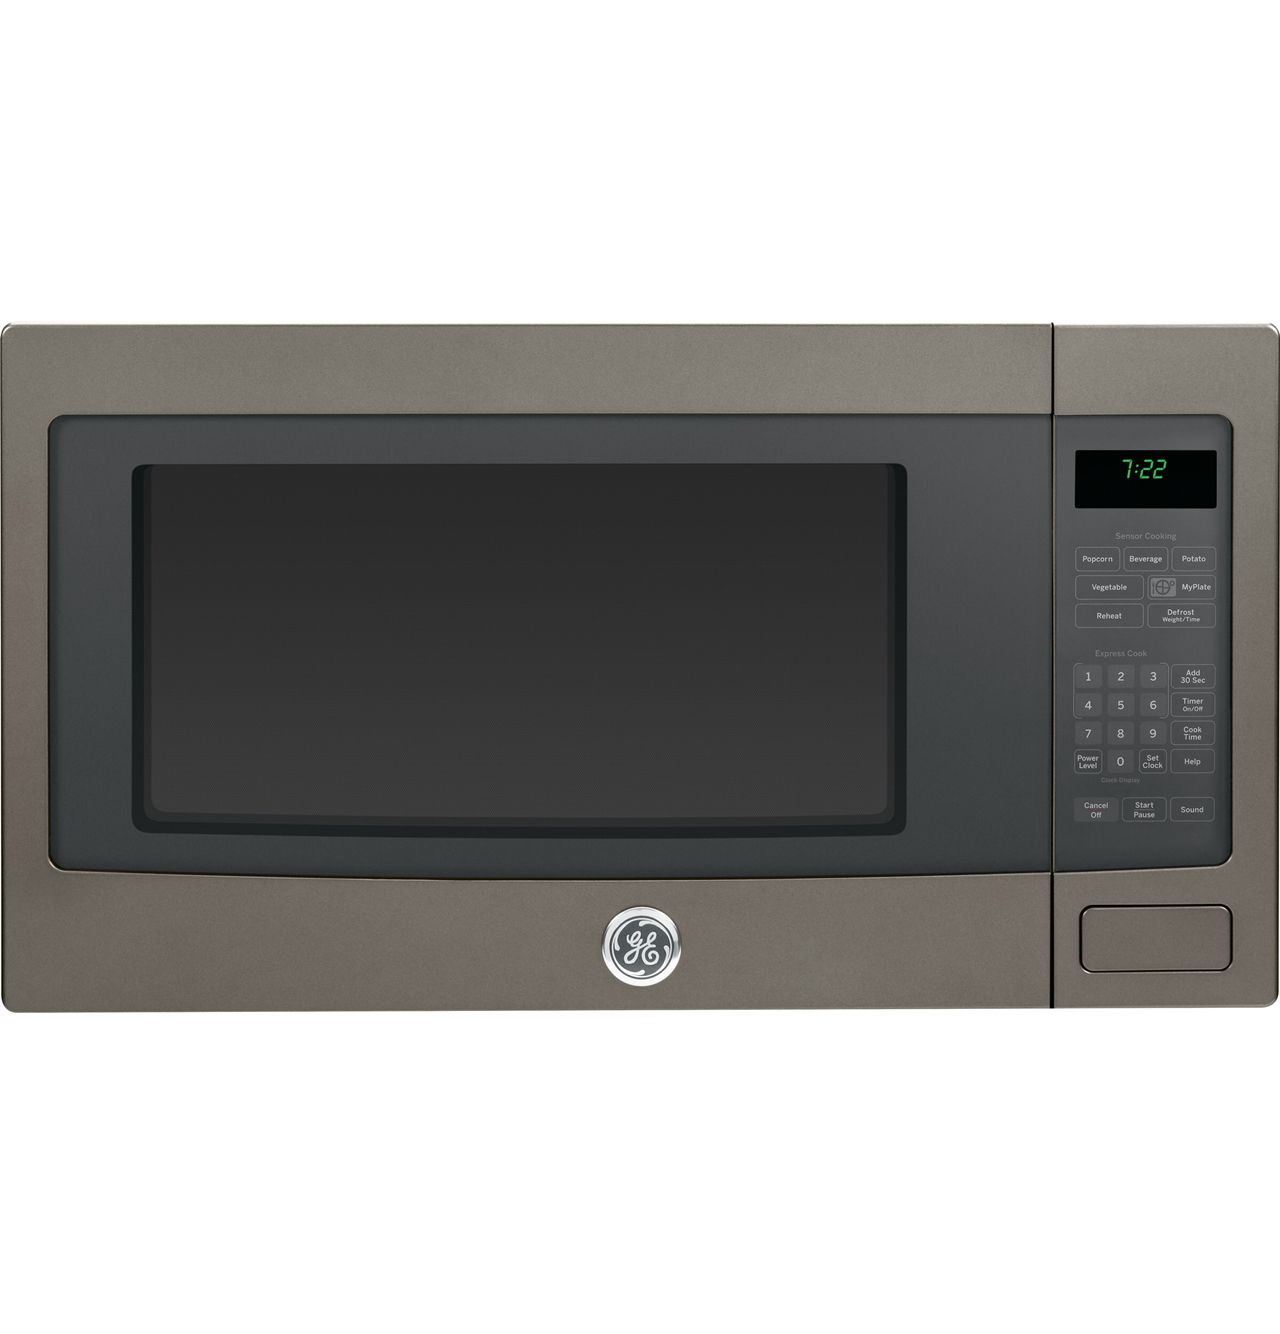 Future Microwave Countertop Microwave Countertop Microwave Oven